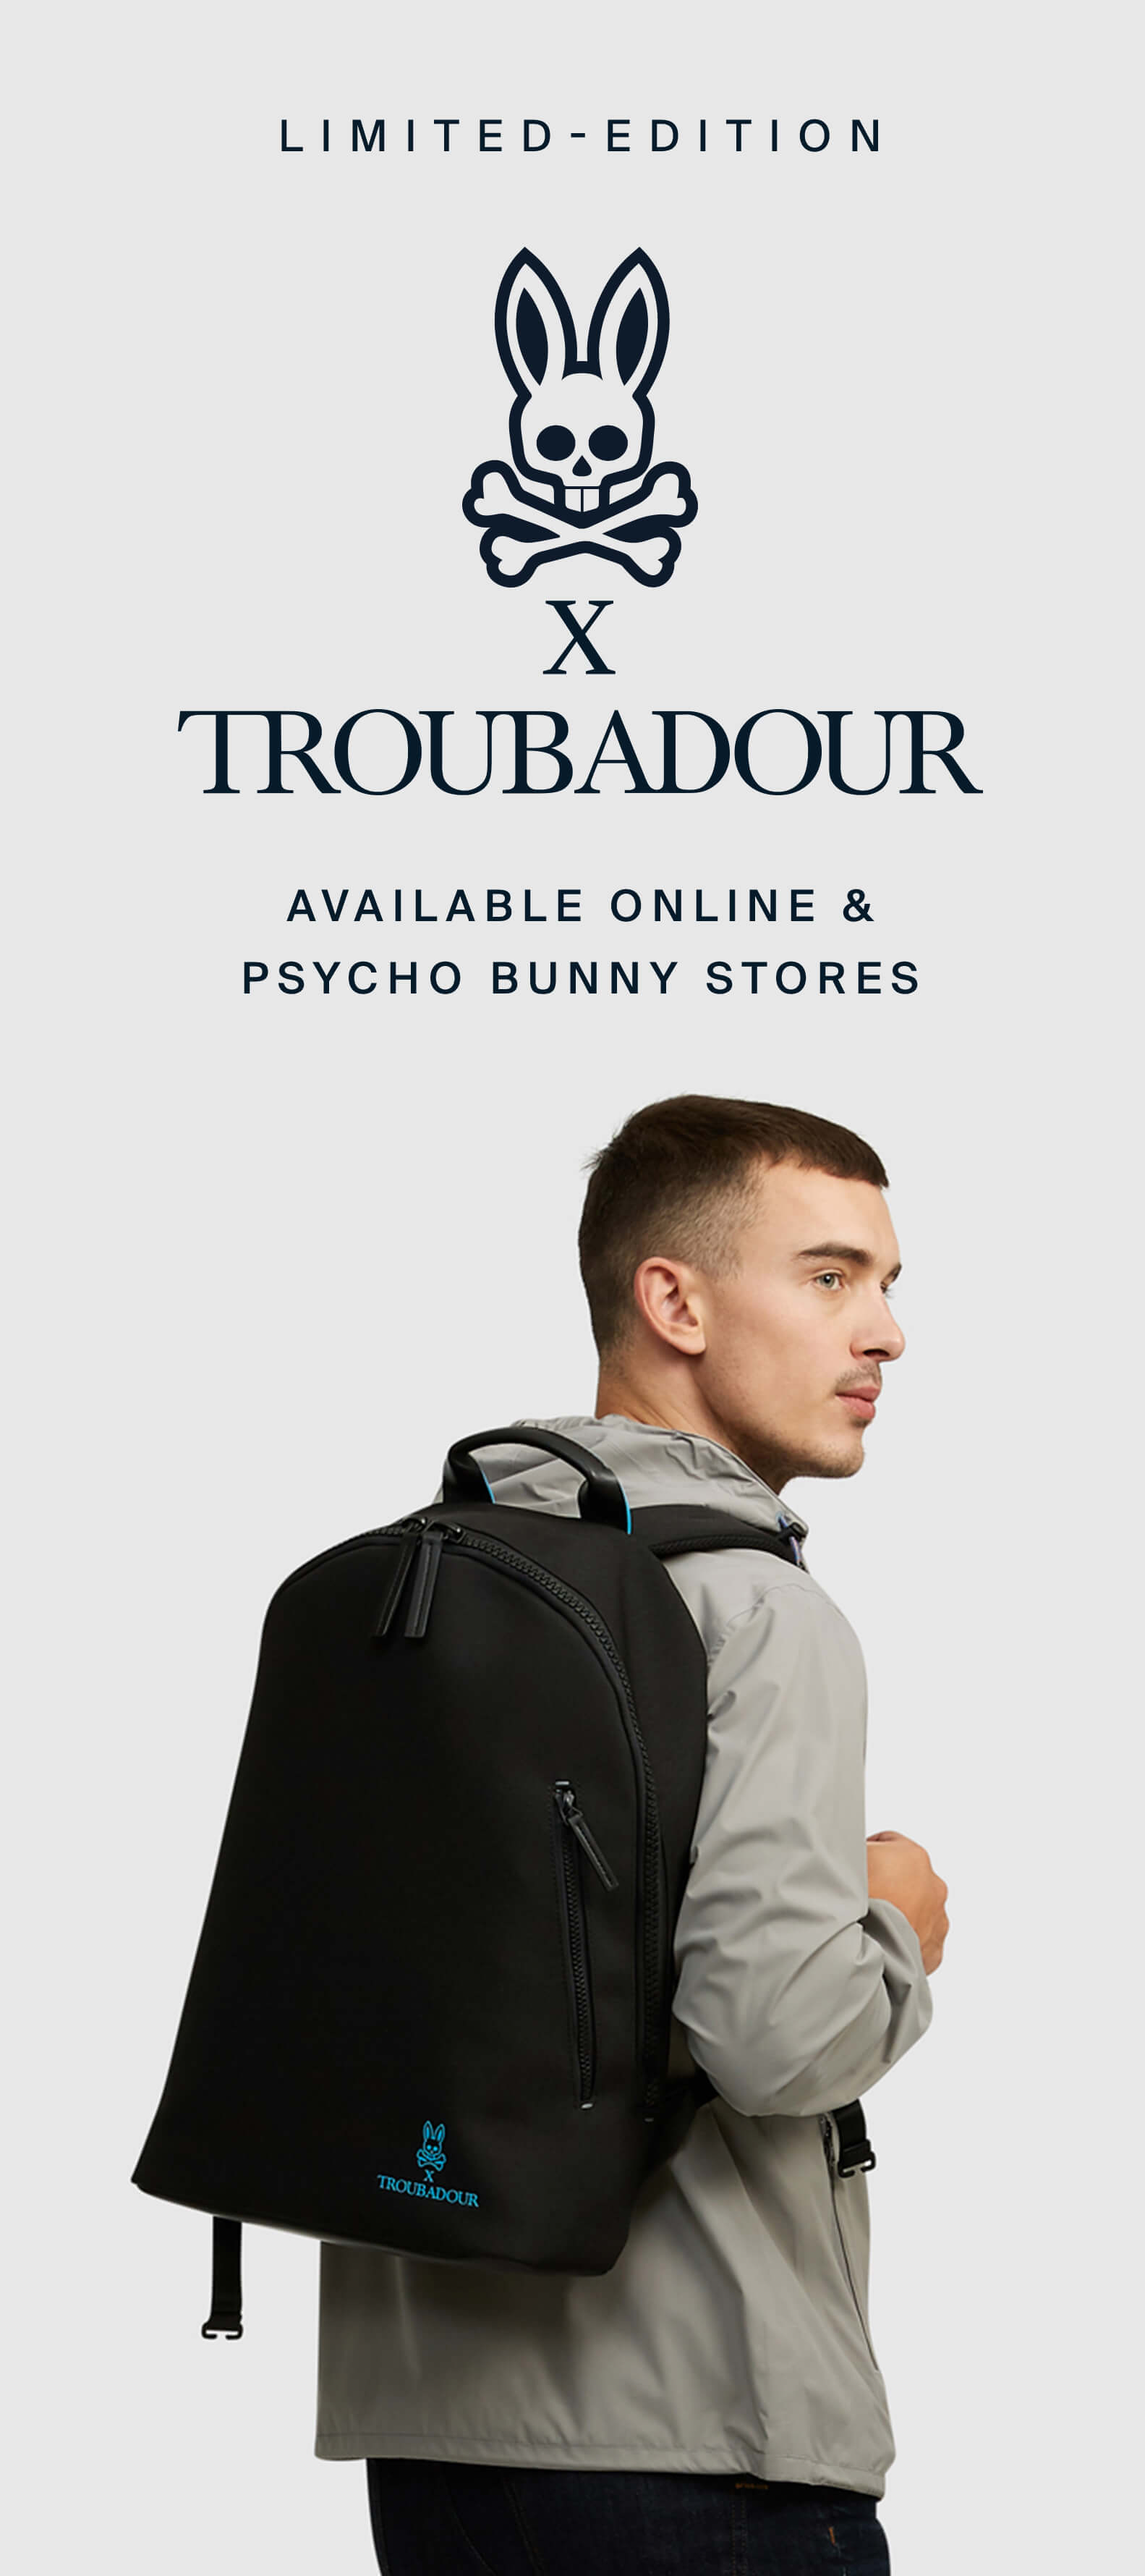 LIMITED-EDITION - PSYCHO BUNNY X TROUBADOUR - AVAILABLE ONLINE & PSYCHO BUNNY STORES